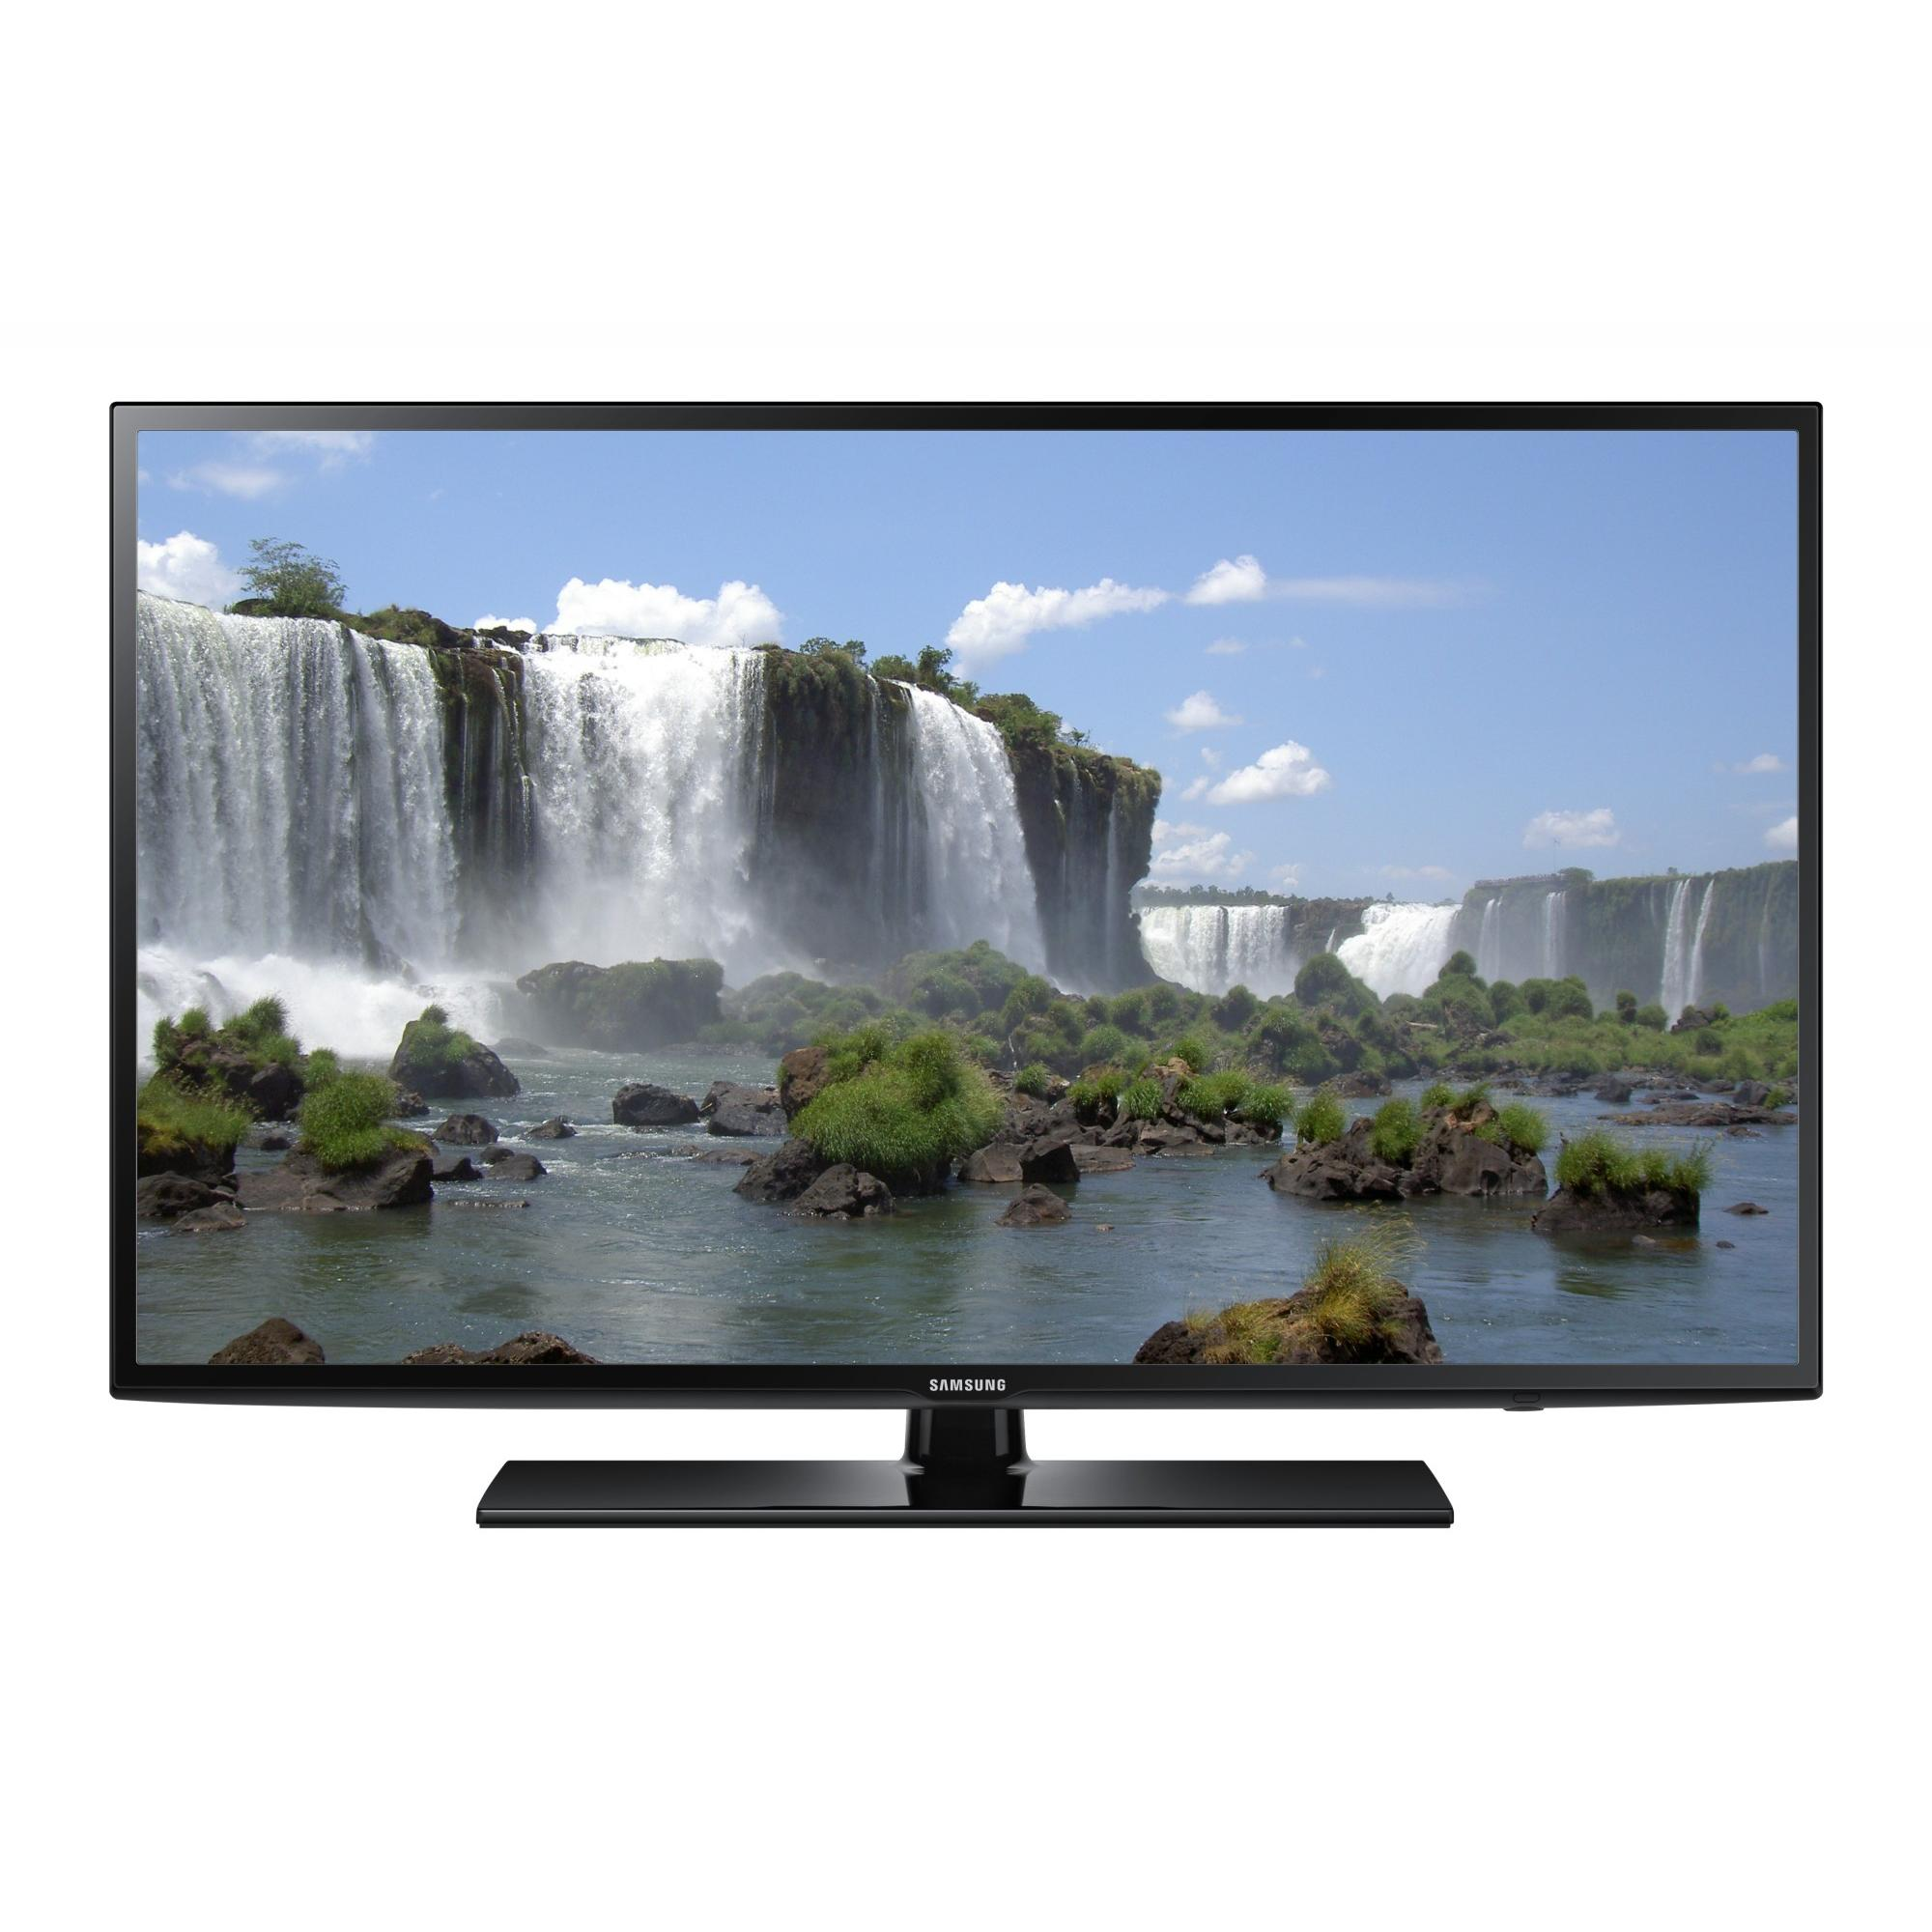 "SAMSUNG 40"" 6200 Series - Full HD Smart LED TV - 1080p, 120MR (Model#: UN40J6200)"